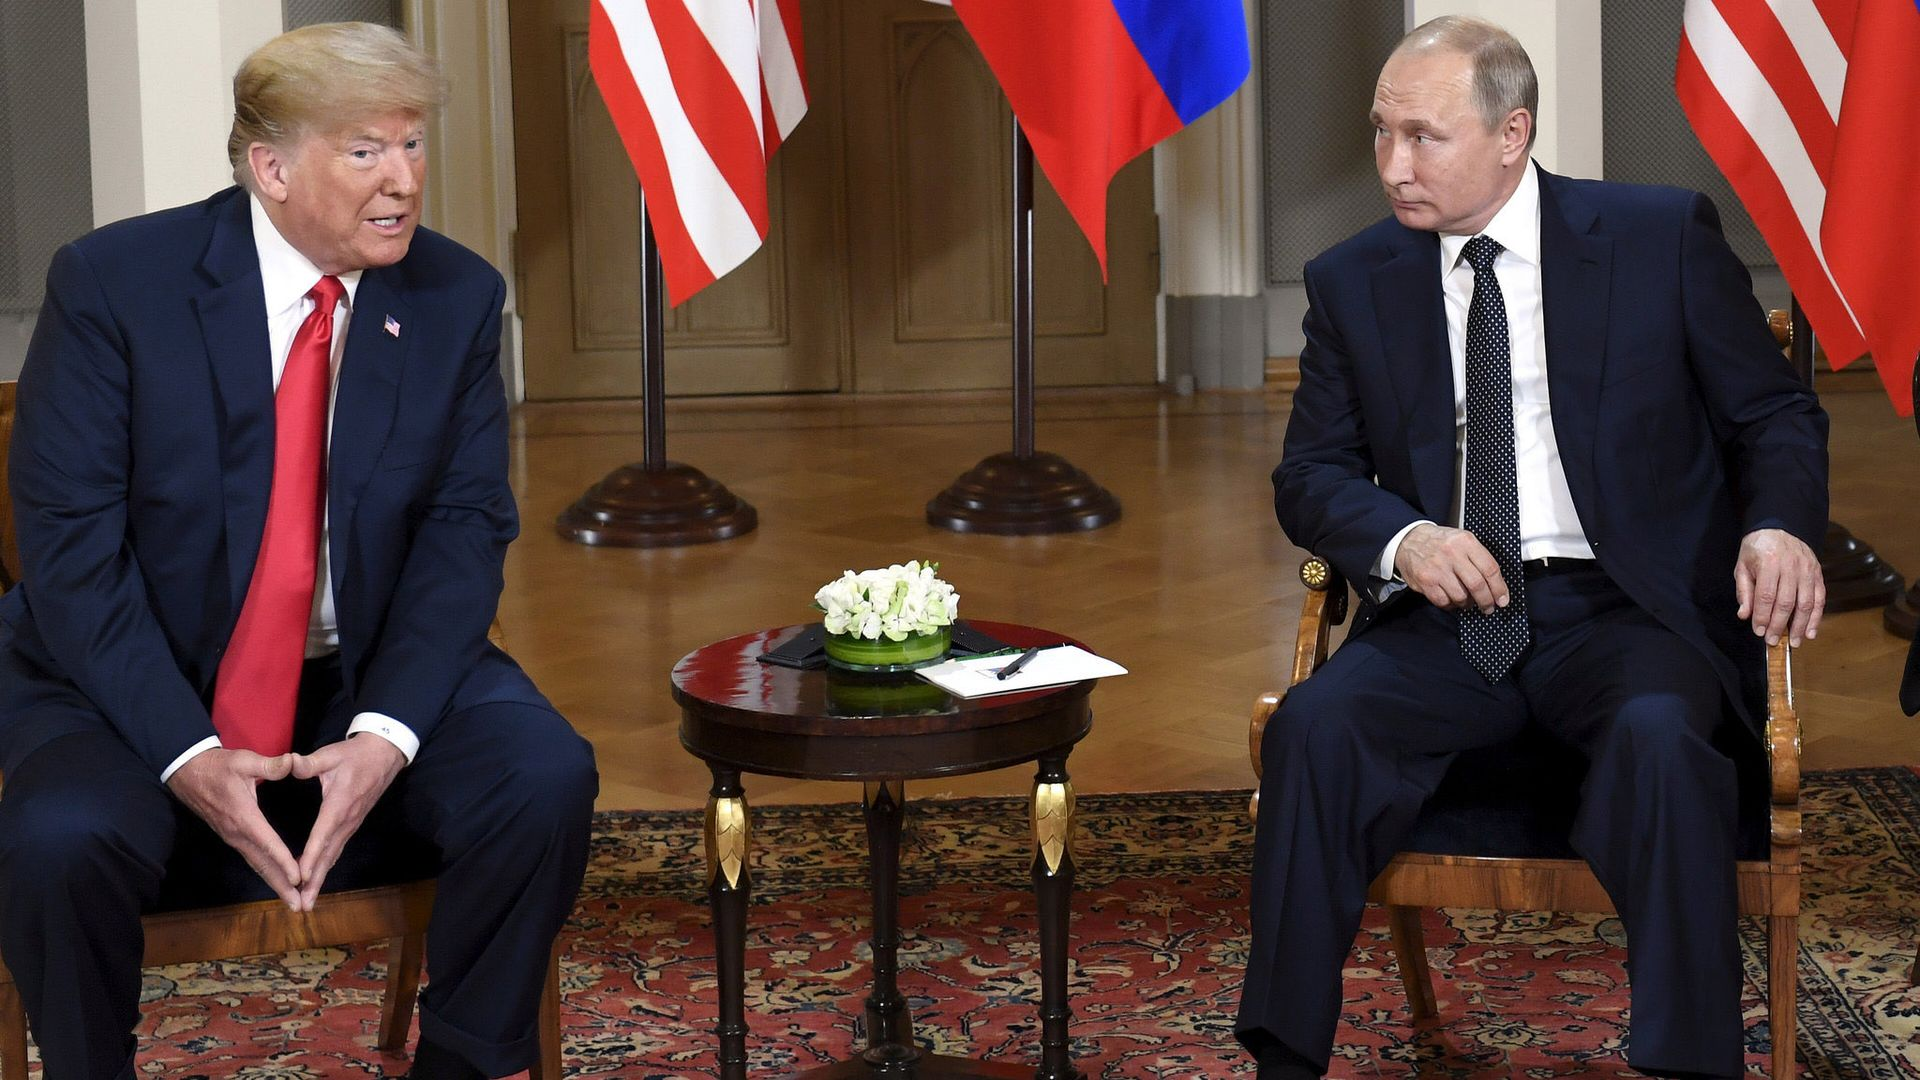 President trump and President putin sitting in chairs next to each other.